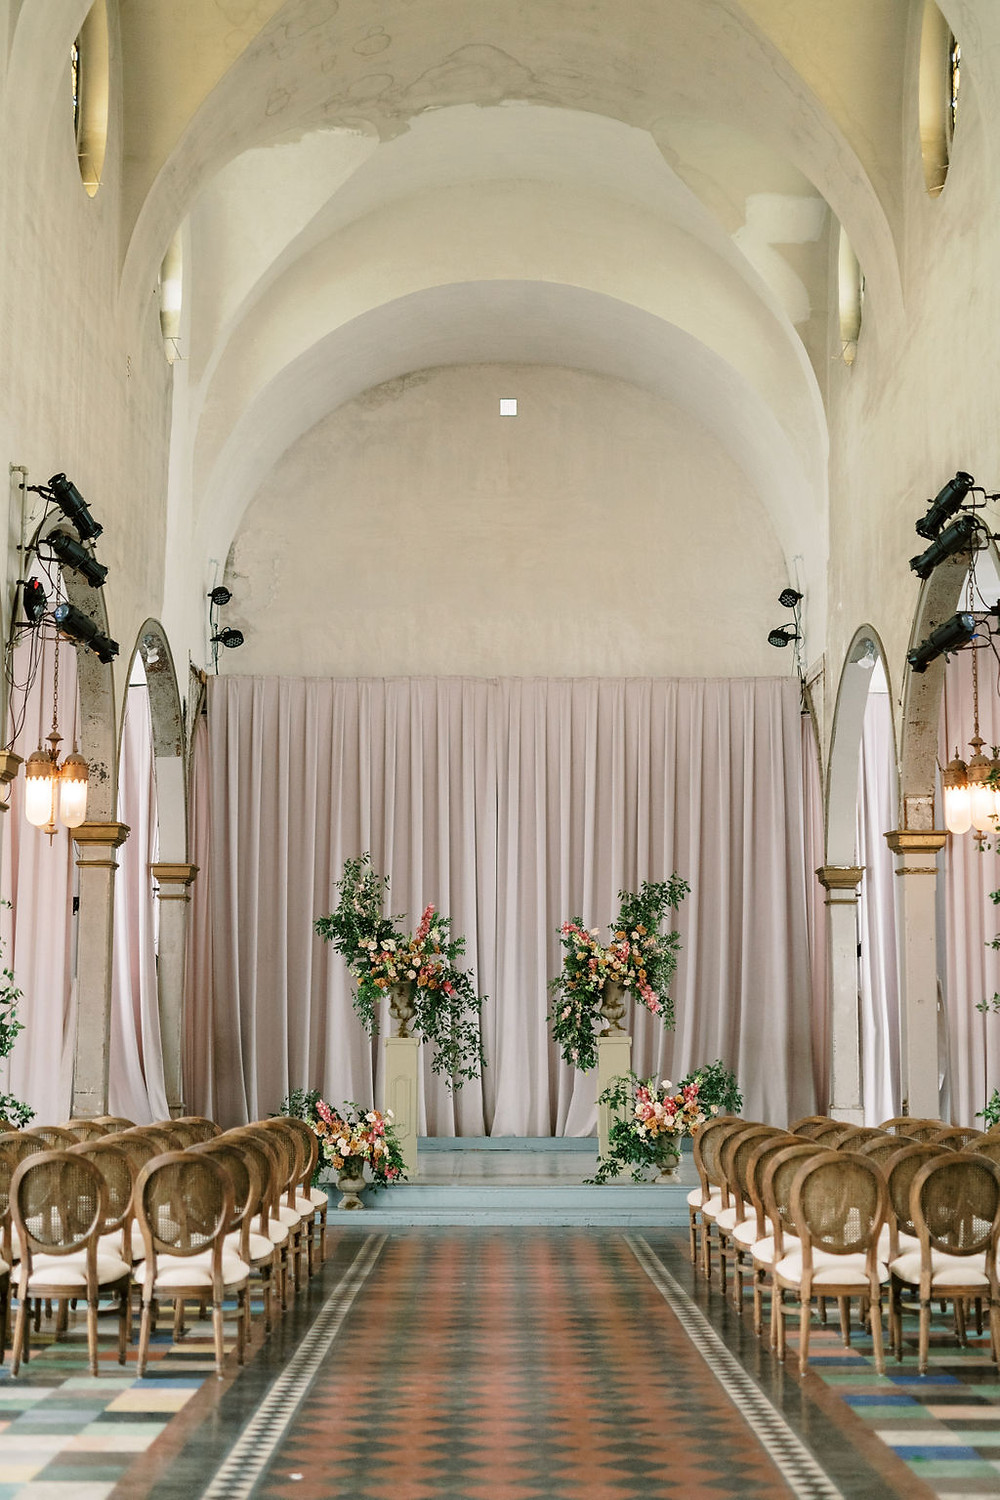 Bridgerton Inspired Ceremony at the Marigny Opera House in New Orleans with decor and furniture by Lovegood Rentals